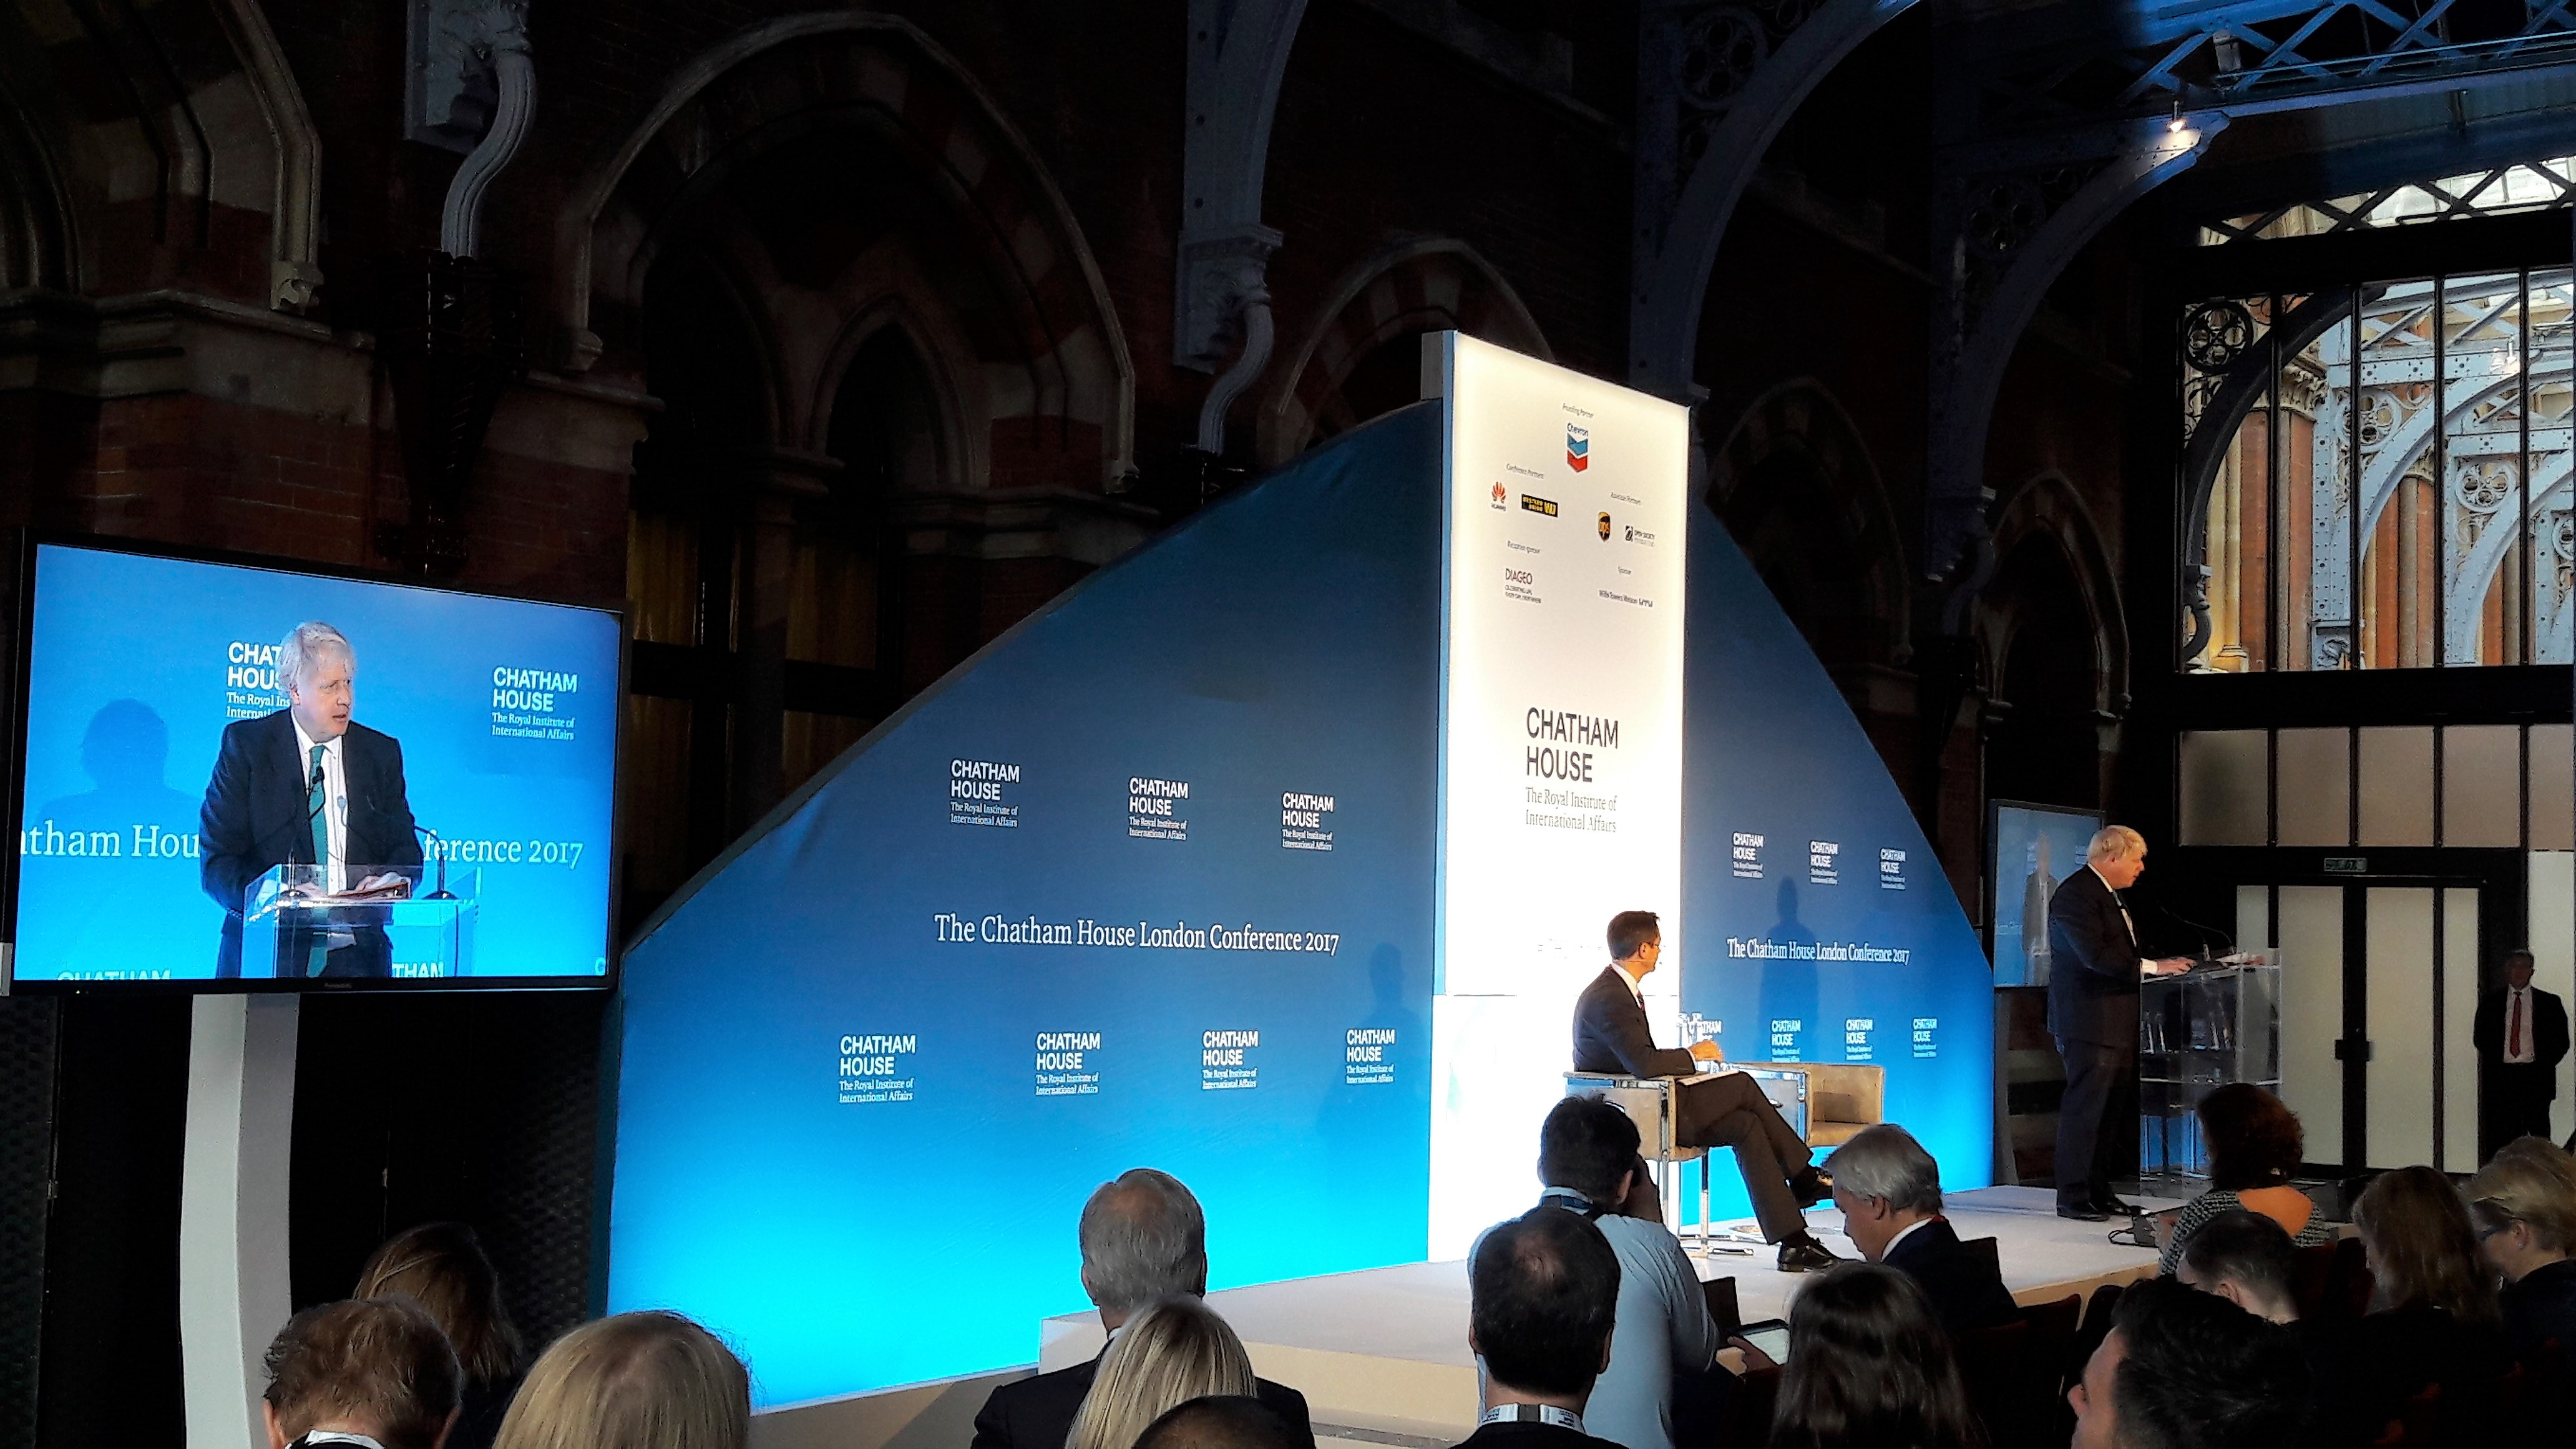 Image for ICDS Chief Executive Participated in the 2017 Chatham House London Conference